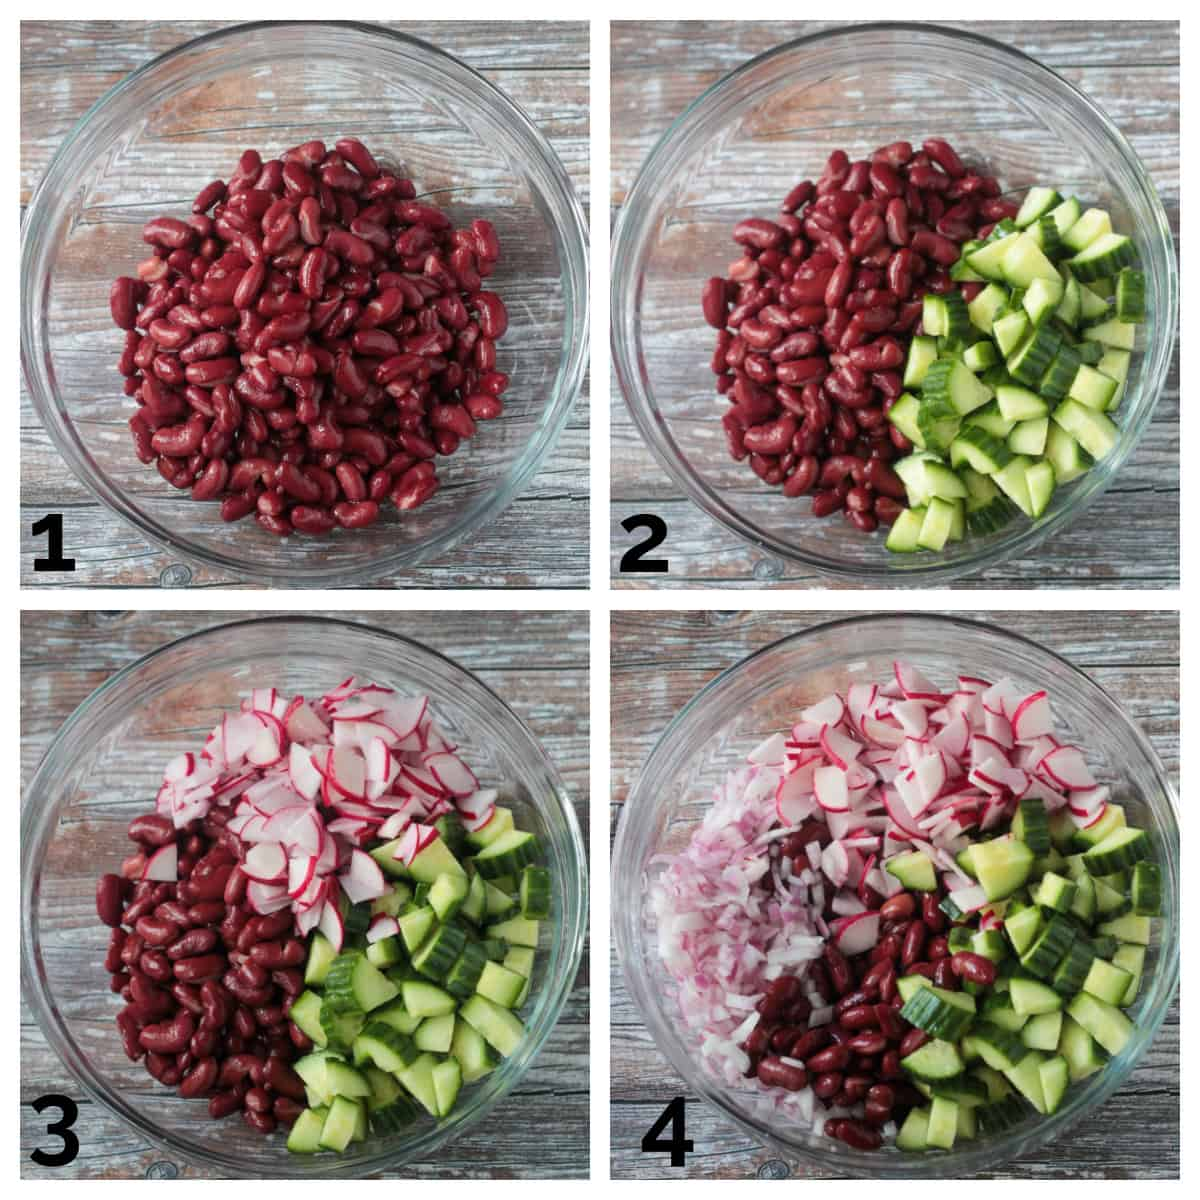 4 photo collage of adding beans, cucumber, radishes and red onion to a mixing bowl.